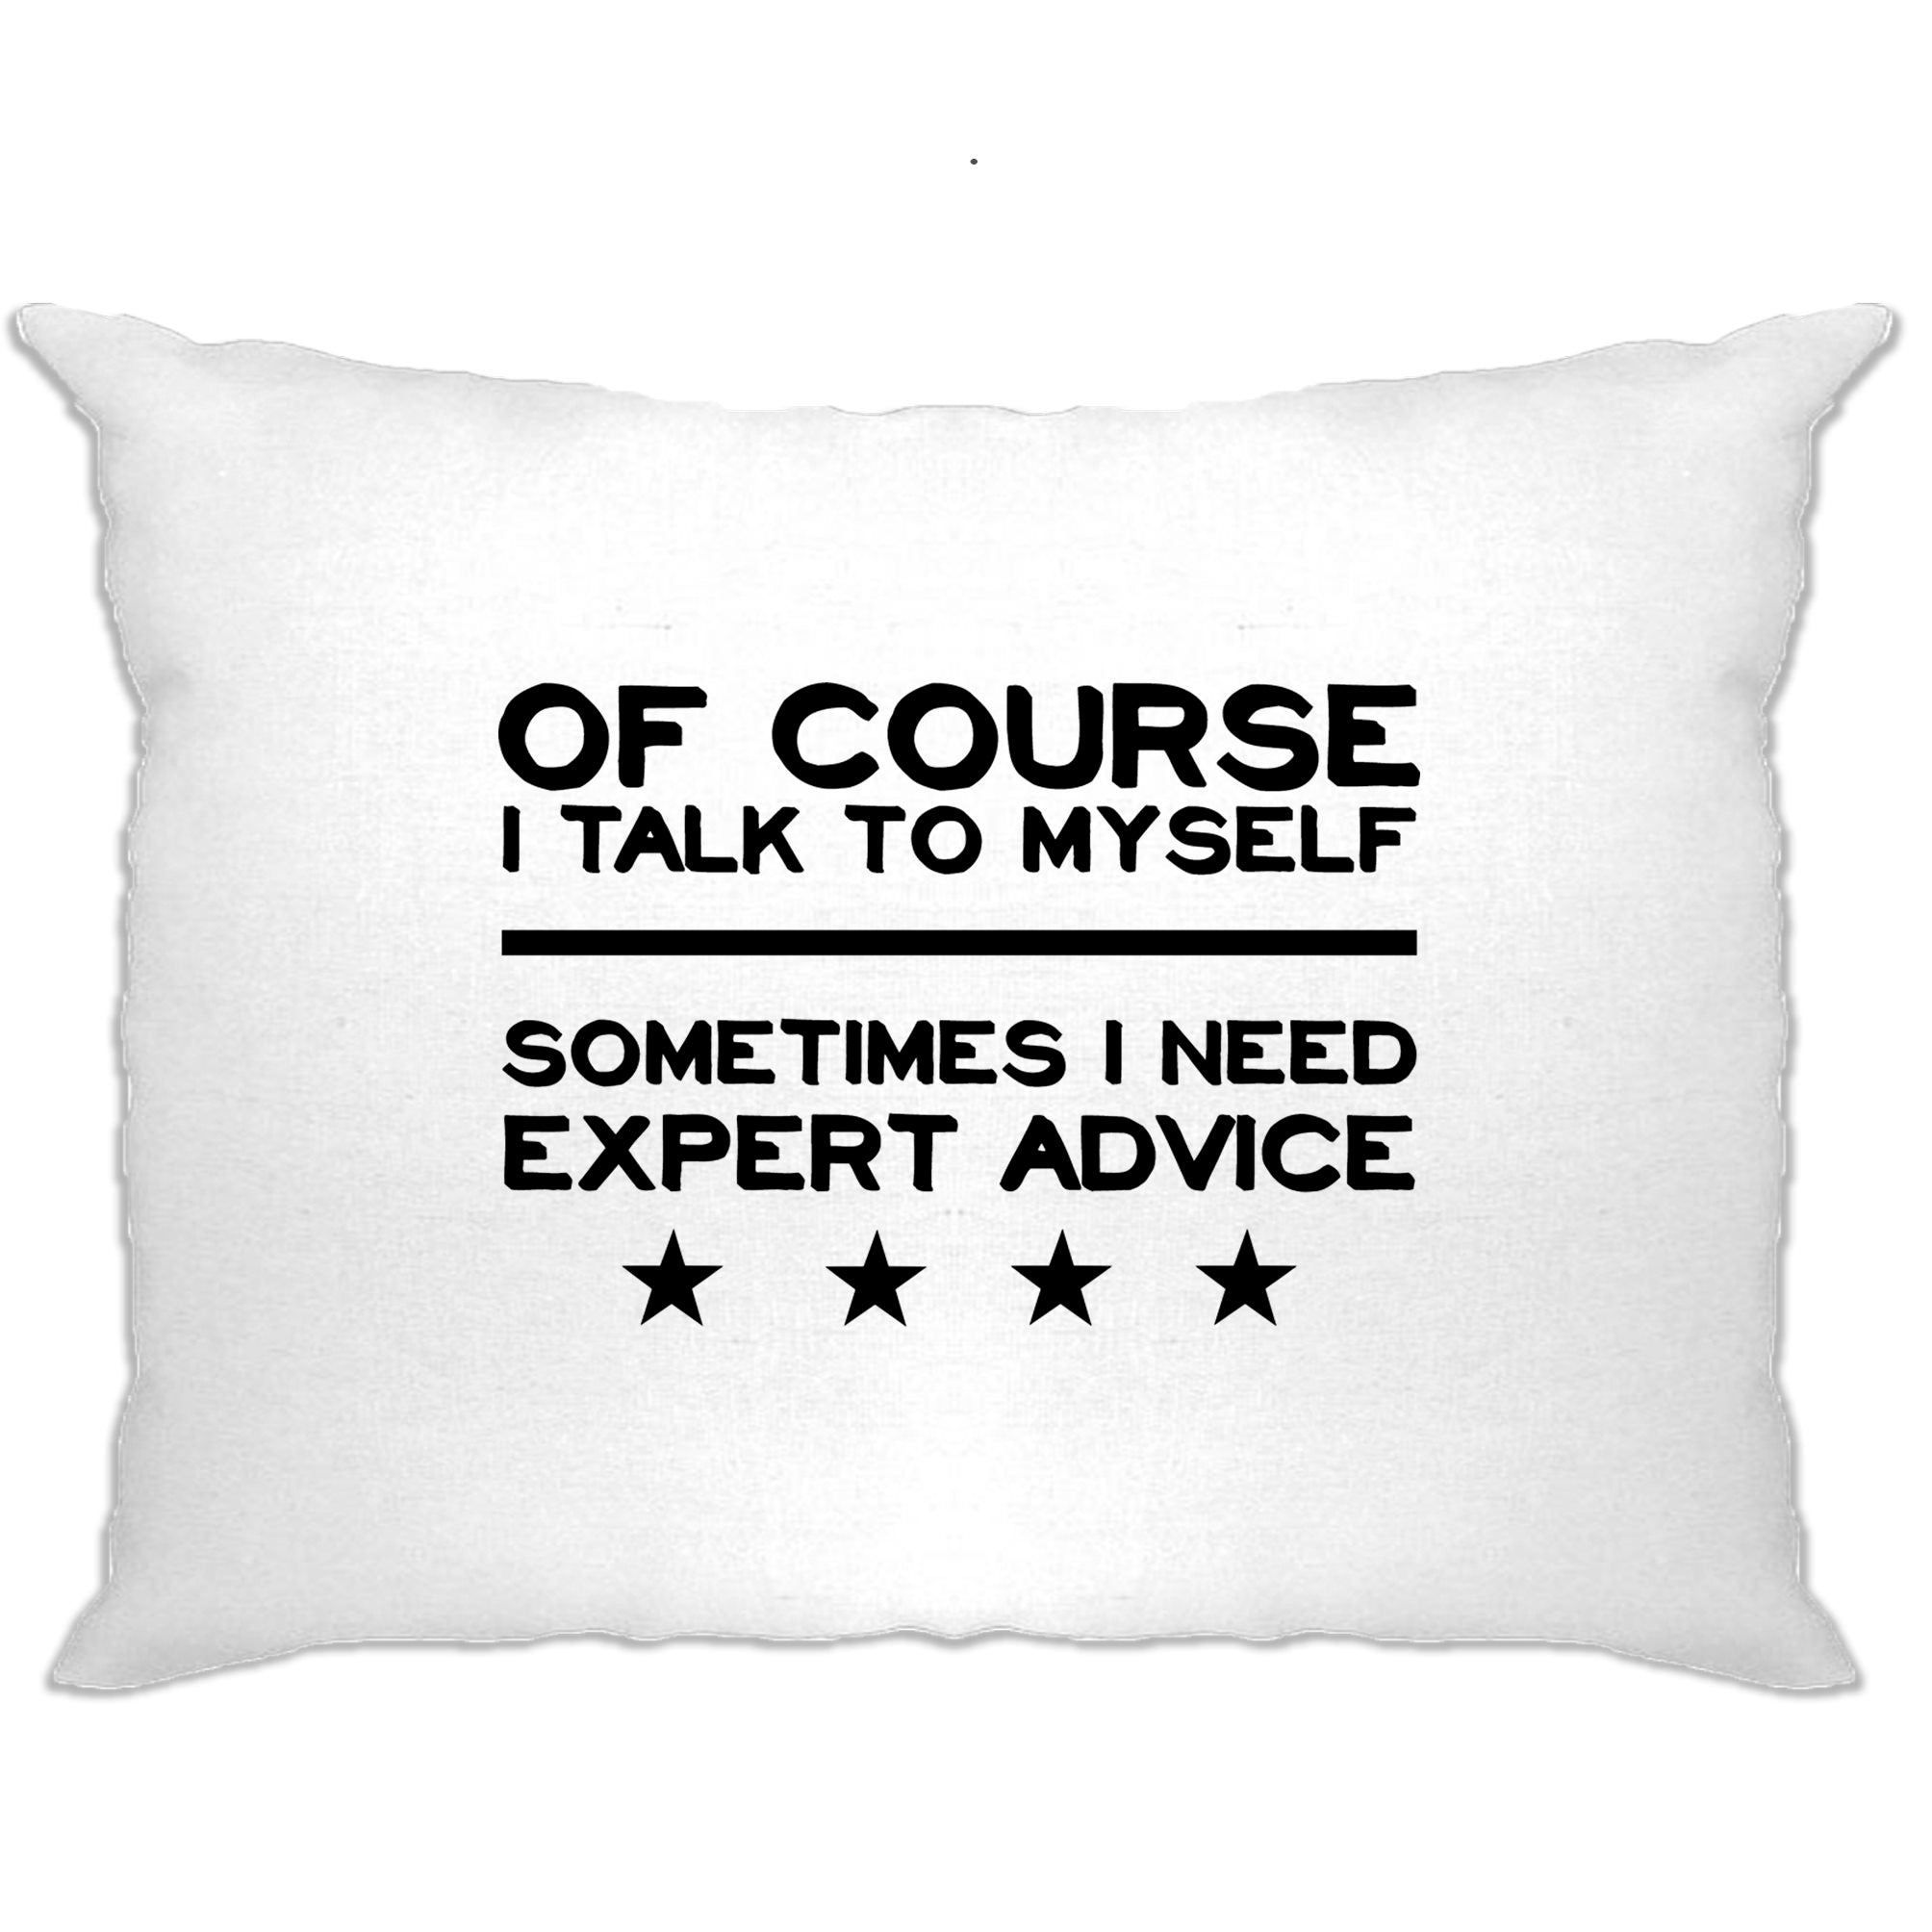 Funny Pillow Case Of Course I Talk To Myself